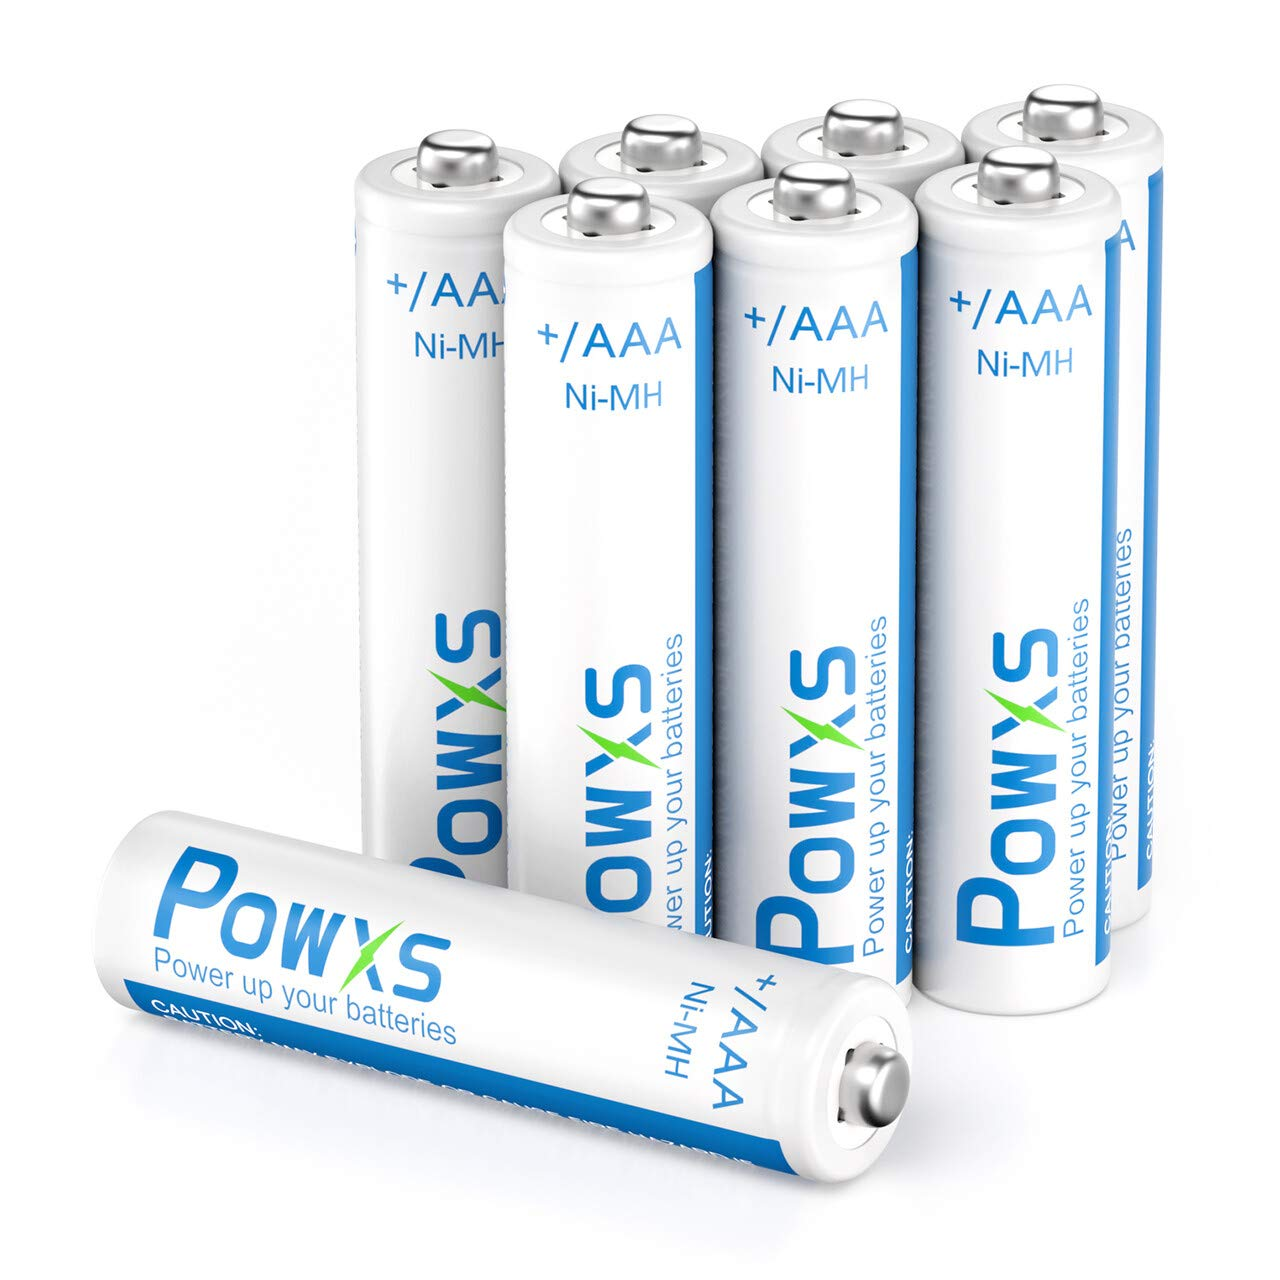 8 PK AAA Rechargeable Batteries